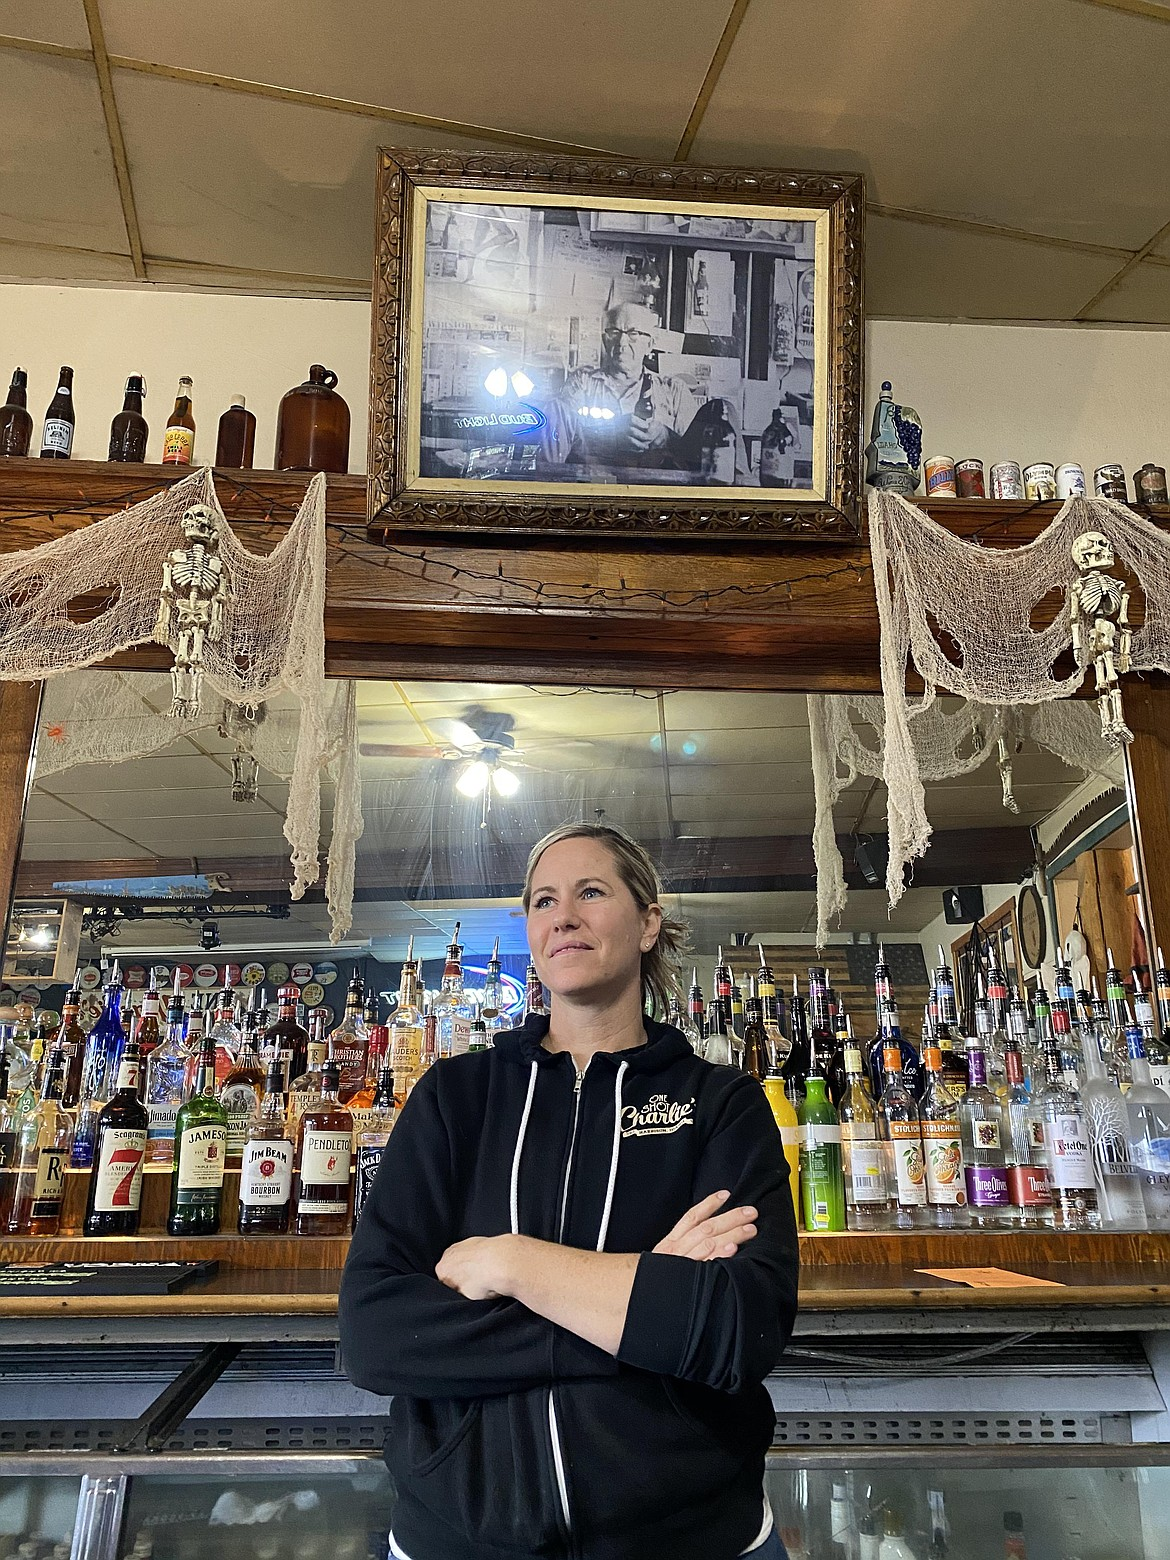 Whitney Haruza has owned One Shot Charlie's, a local Harrison bar and restaurant since 2021, but the building has been a key feature of the city since 1949. (MADISON HARDY/Press)